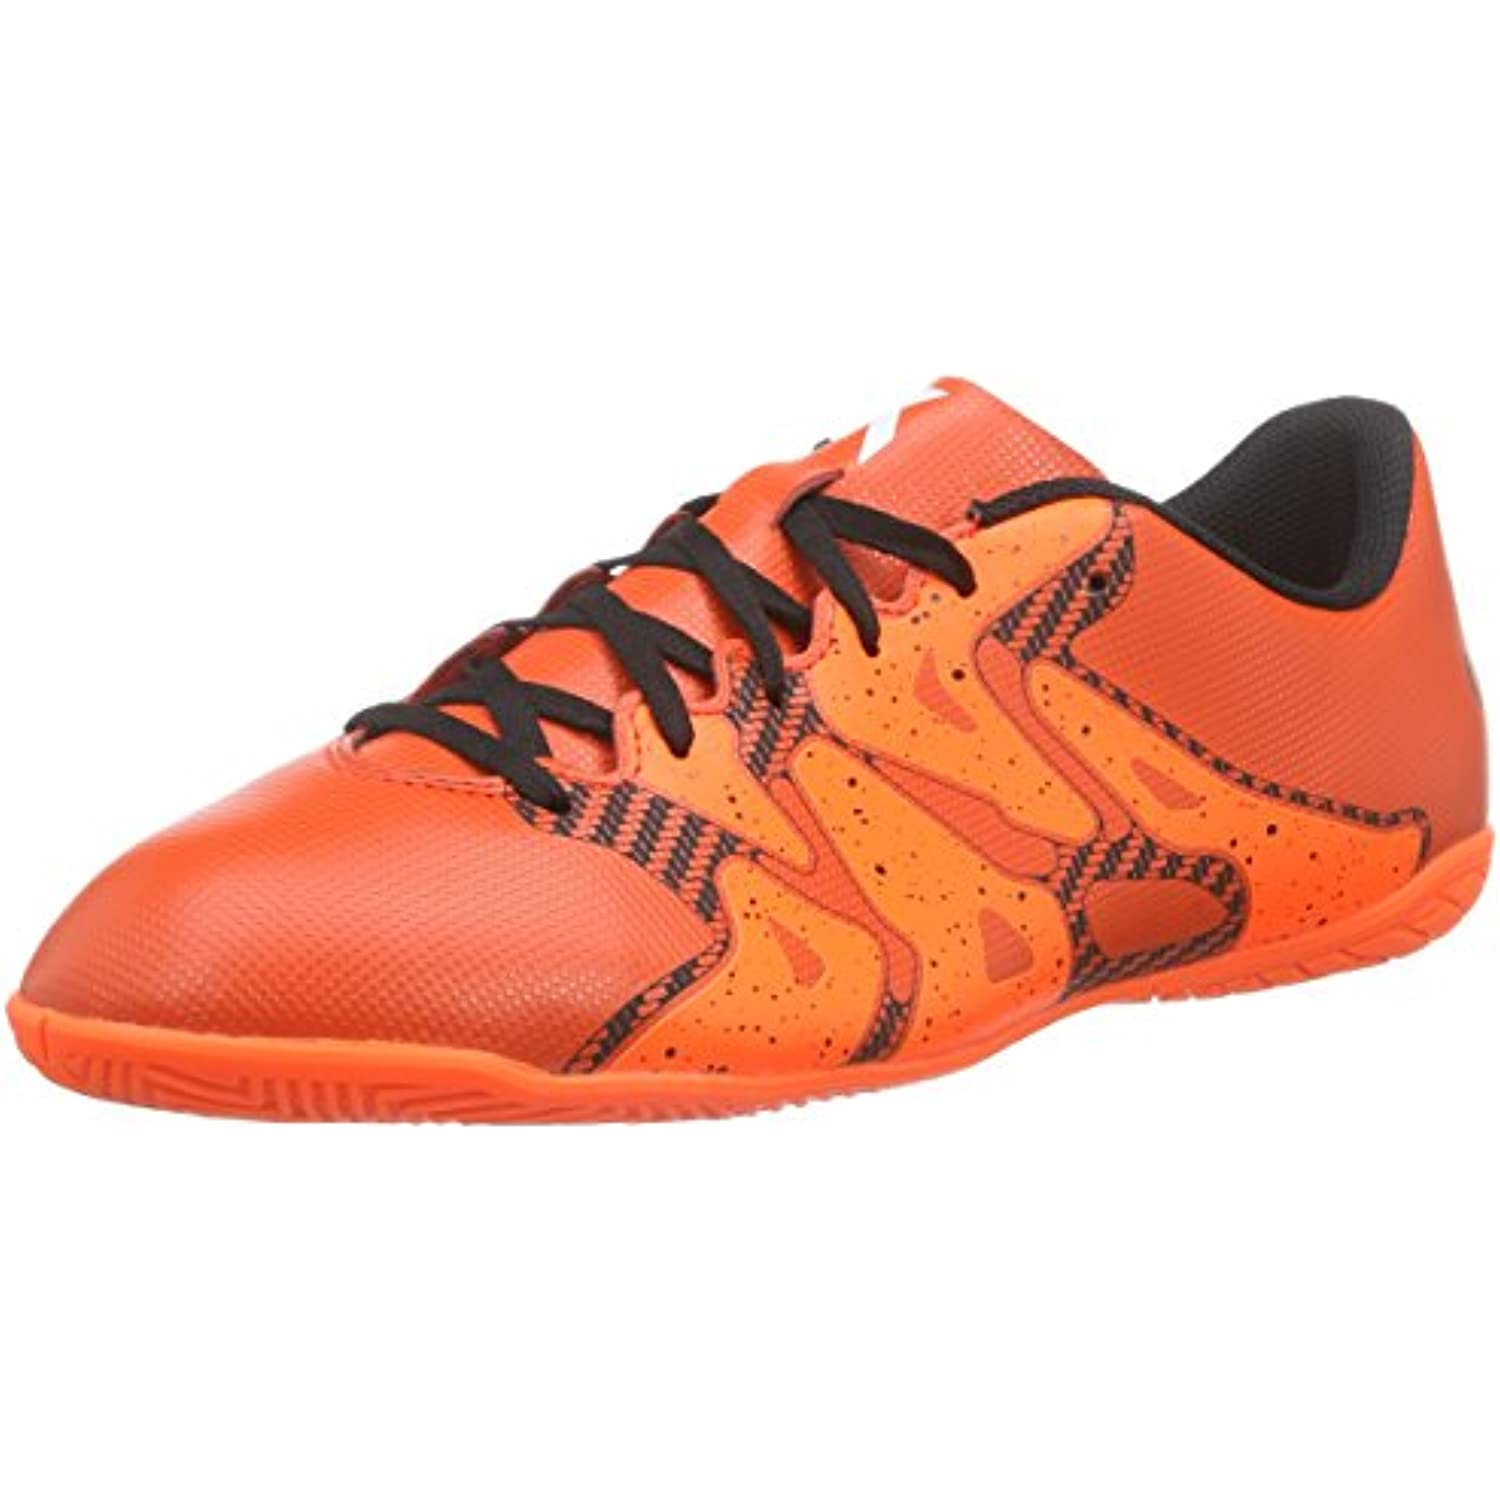 Adidas X15.4 in, in, in, Chaussures de Football Homme - B015PK7GUQ - 183e6c